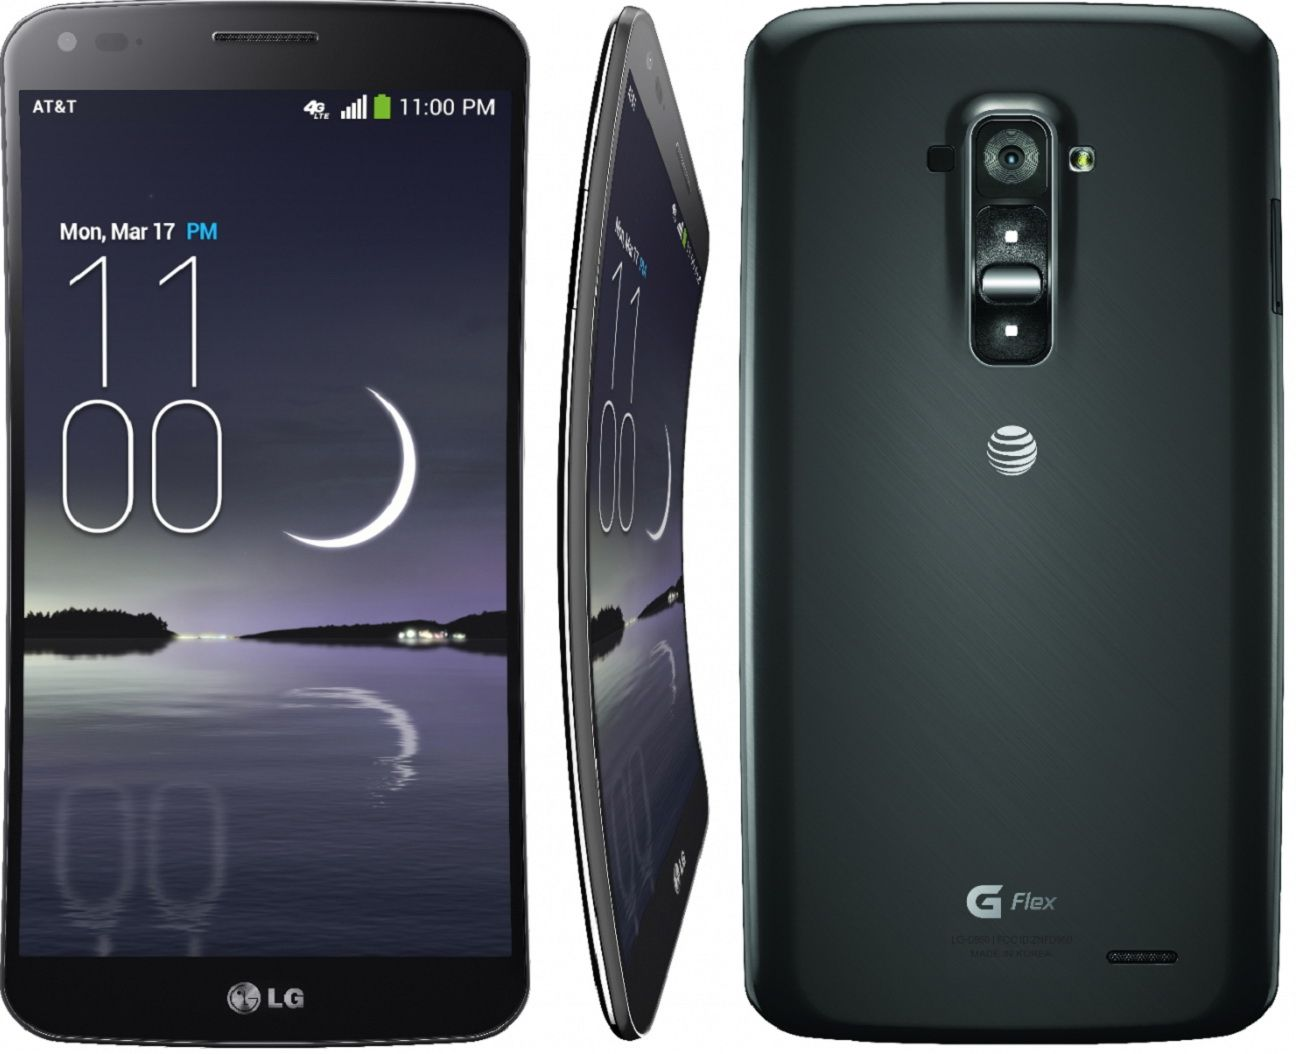 Lg g flex curved display price specification details